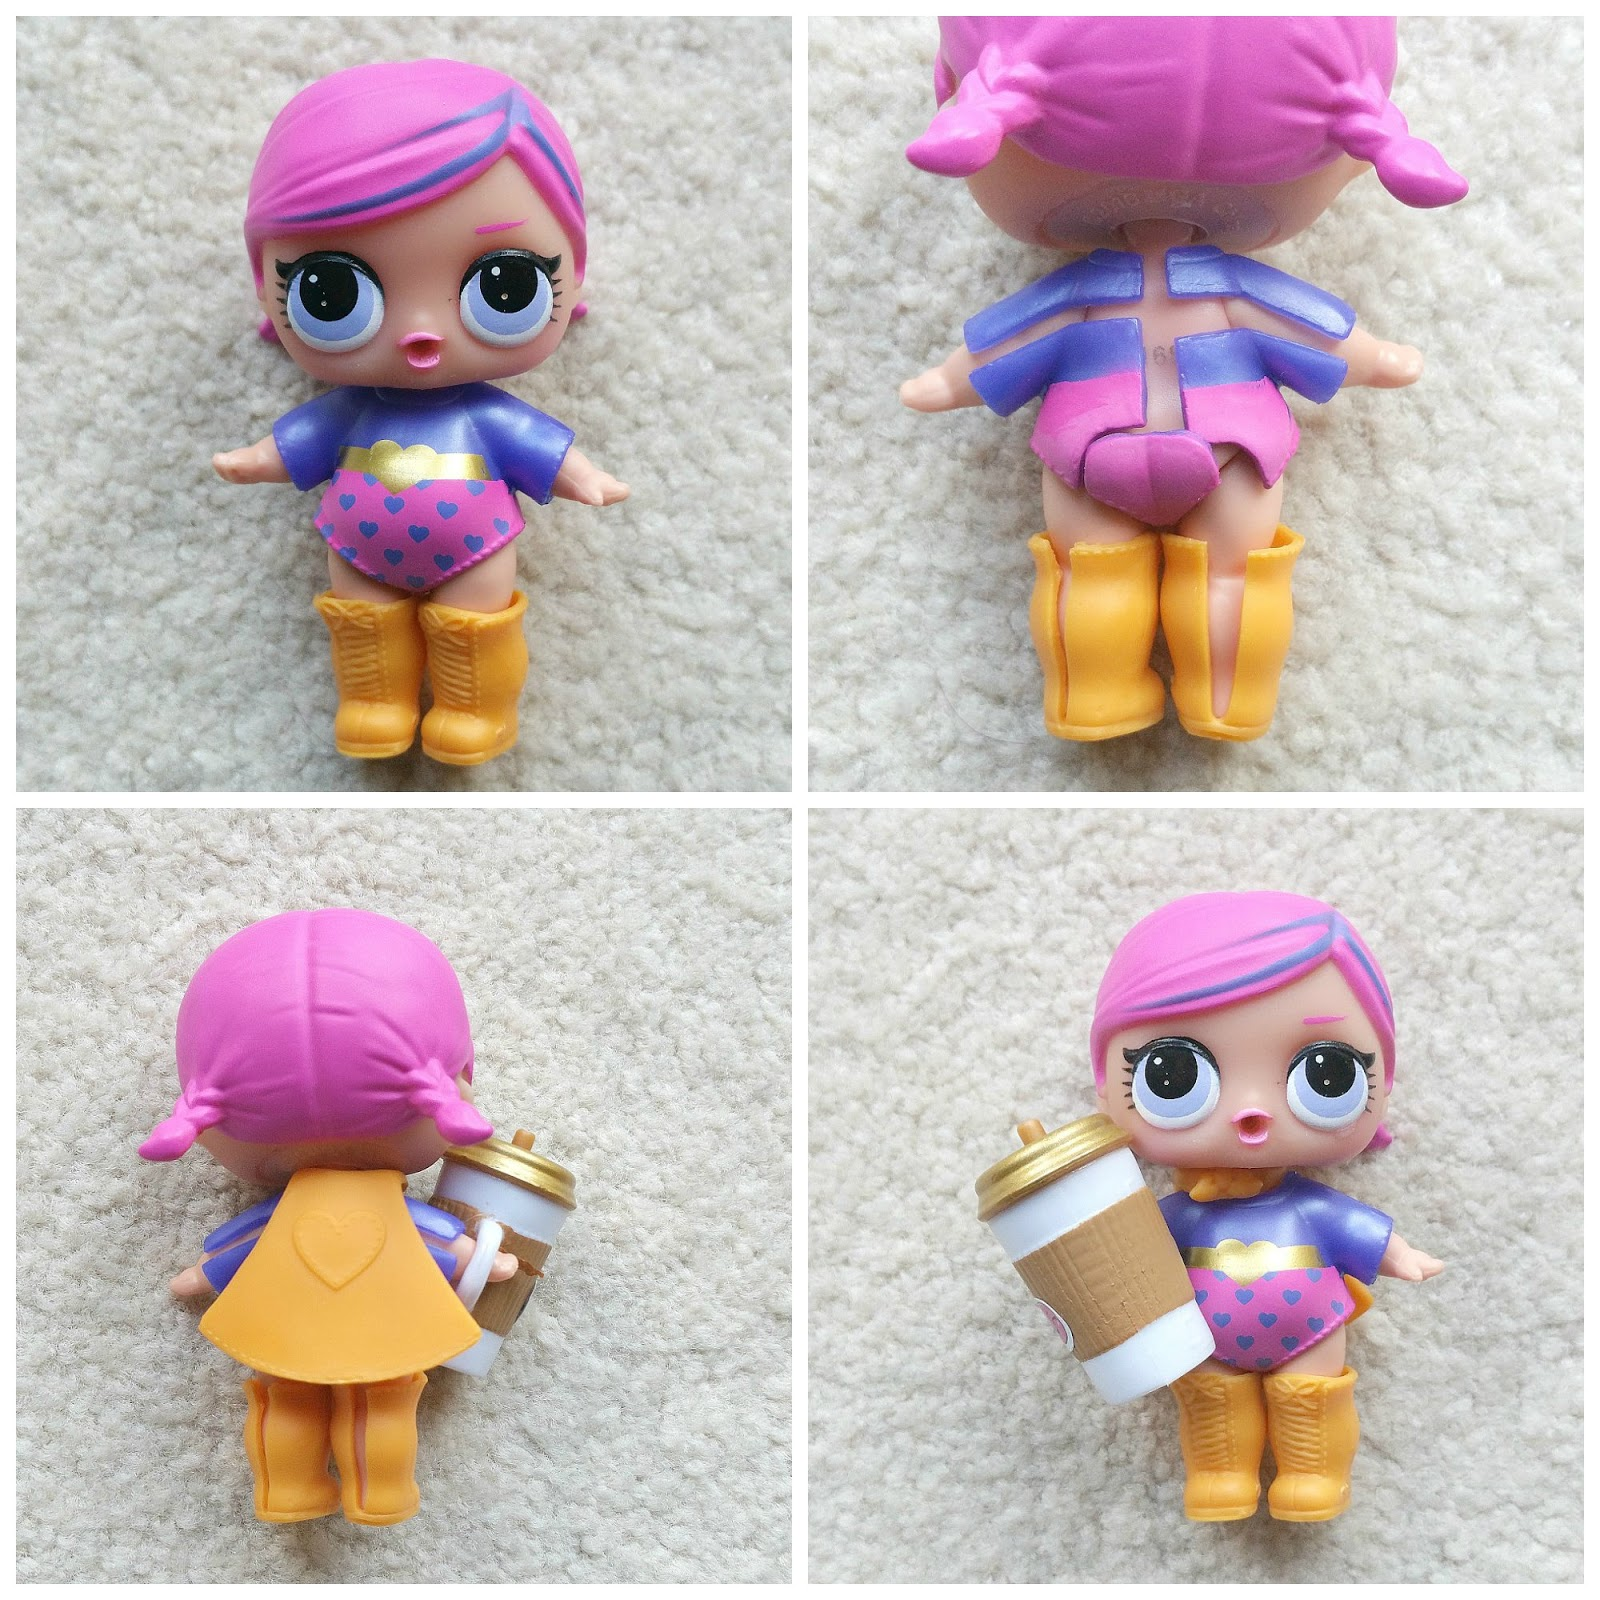 L.O.L. Surprise Doll, Collectible dolls, LOLSurprise